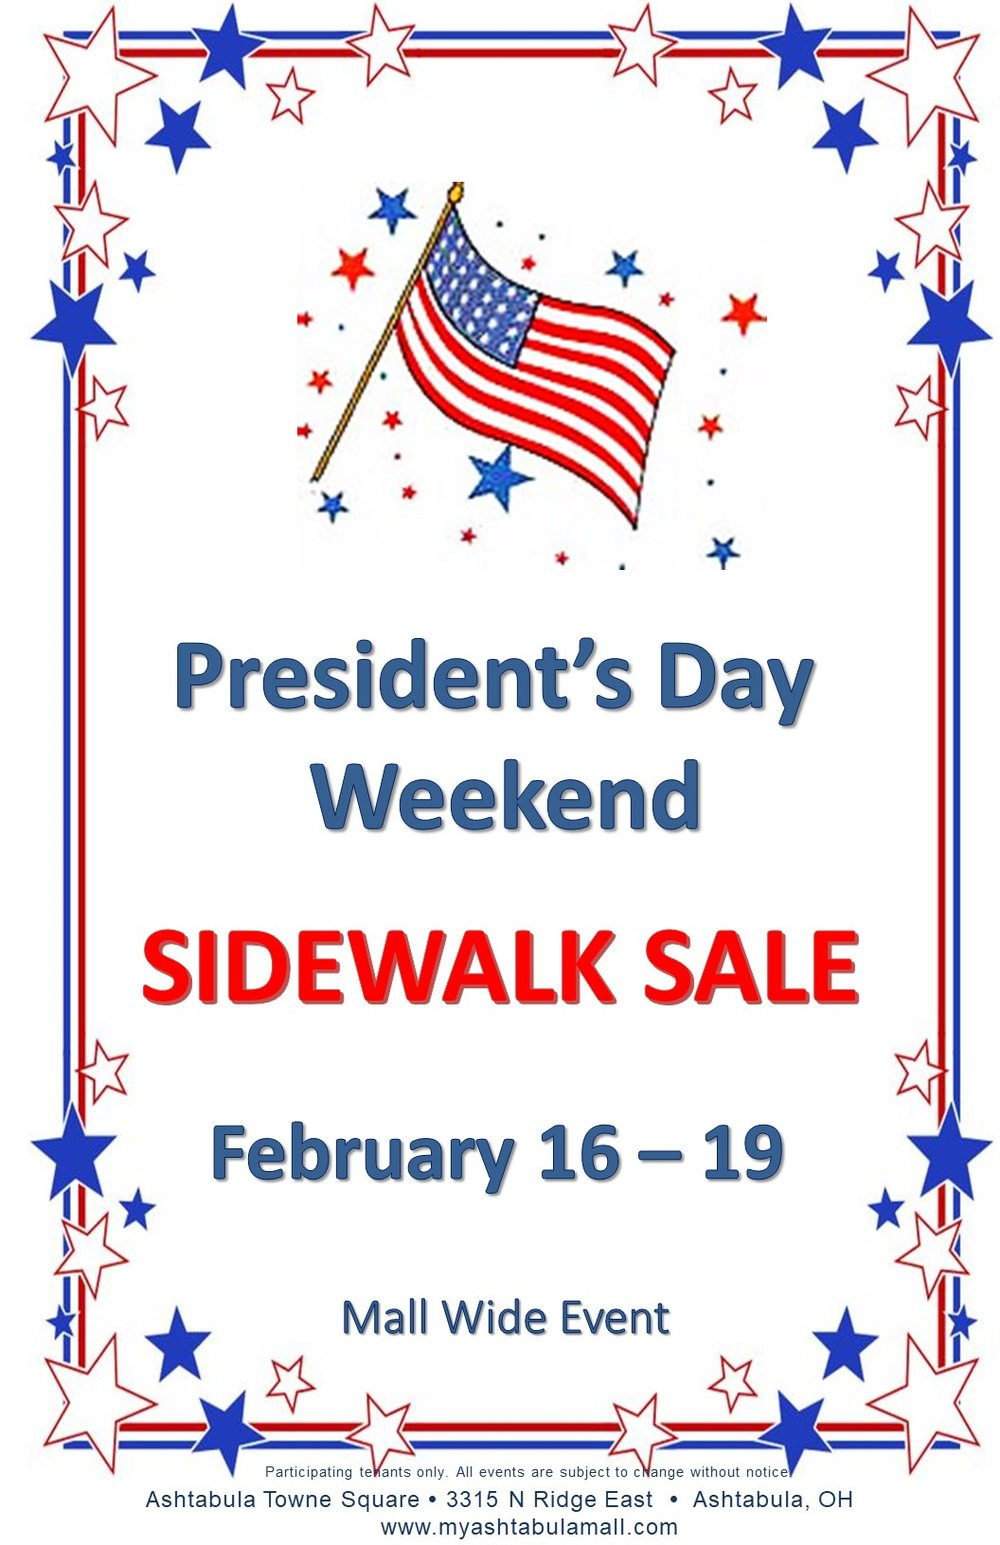 President's Day sidewalk Sale 2018 JPeg.jpg